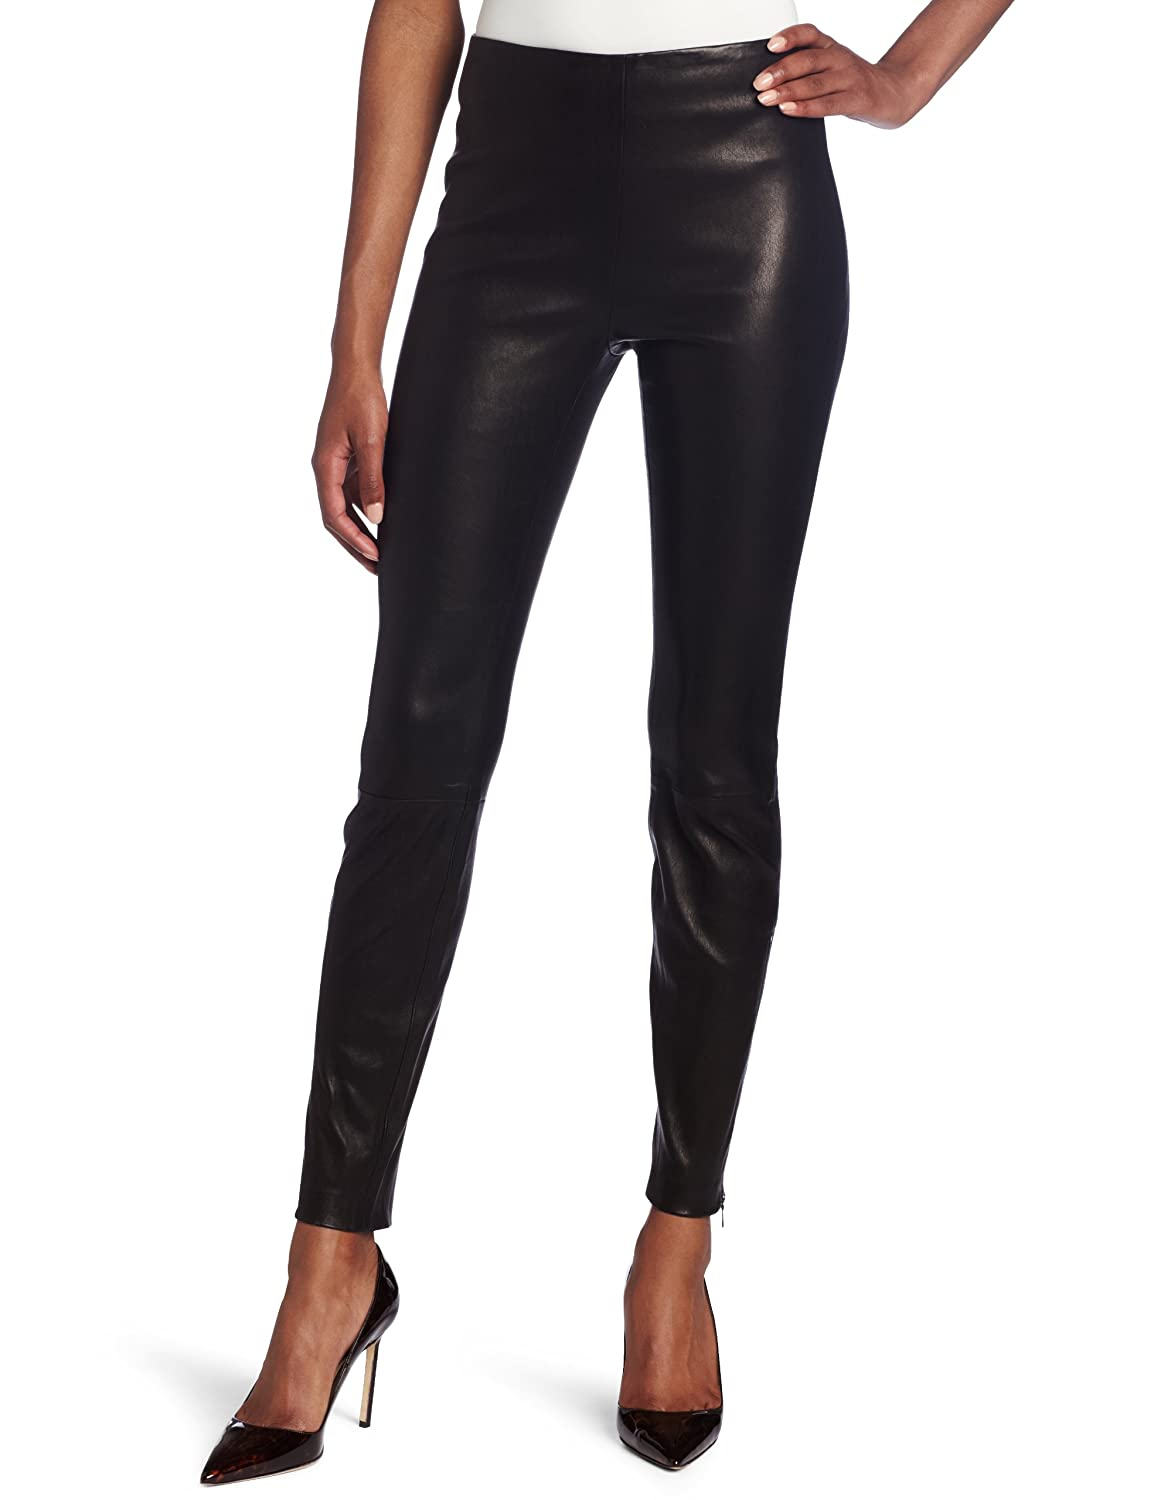 Elegant Womens Skinny Lin Slim Fit Black Denim Jeans From Nudie Jeans  Complete With Decorative Silvertone Rivets, A Leather Branded Waistband Patch To The Rear, And A Signature Nudie Jeans Woven Brand Tab To The Rear Right Pocket